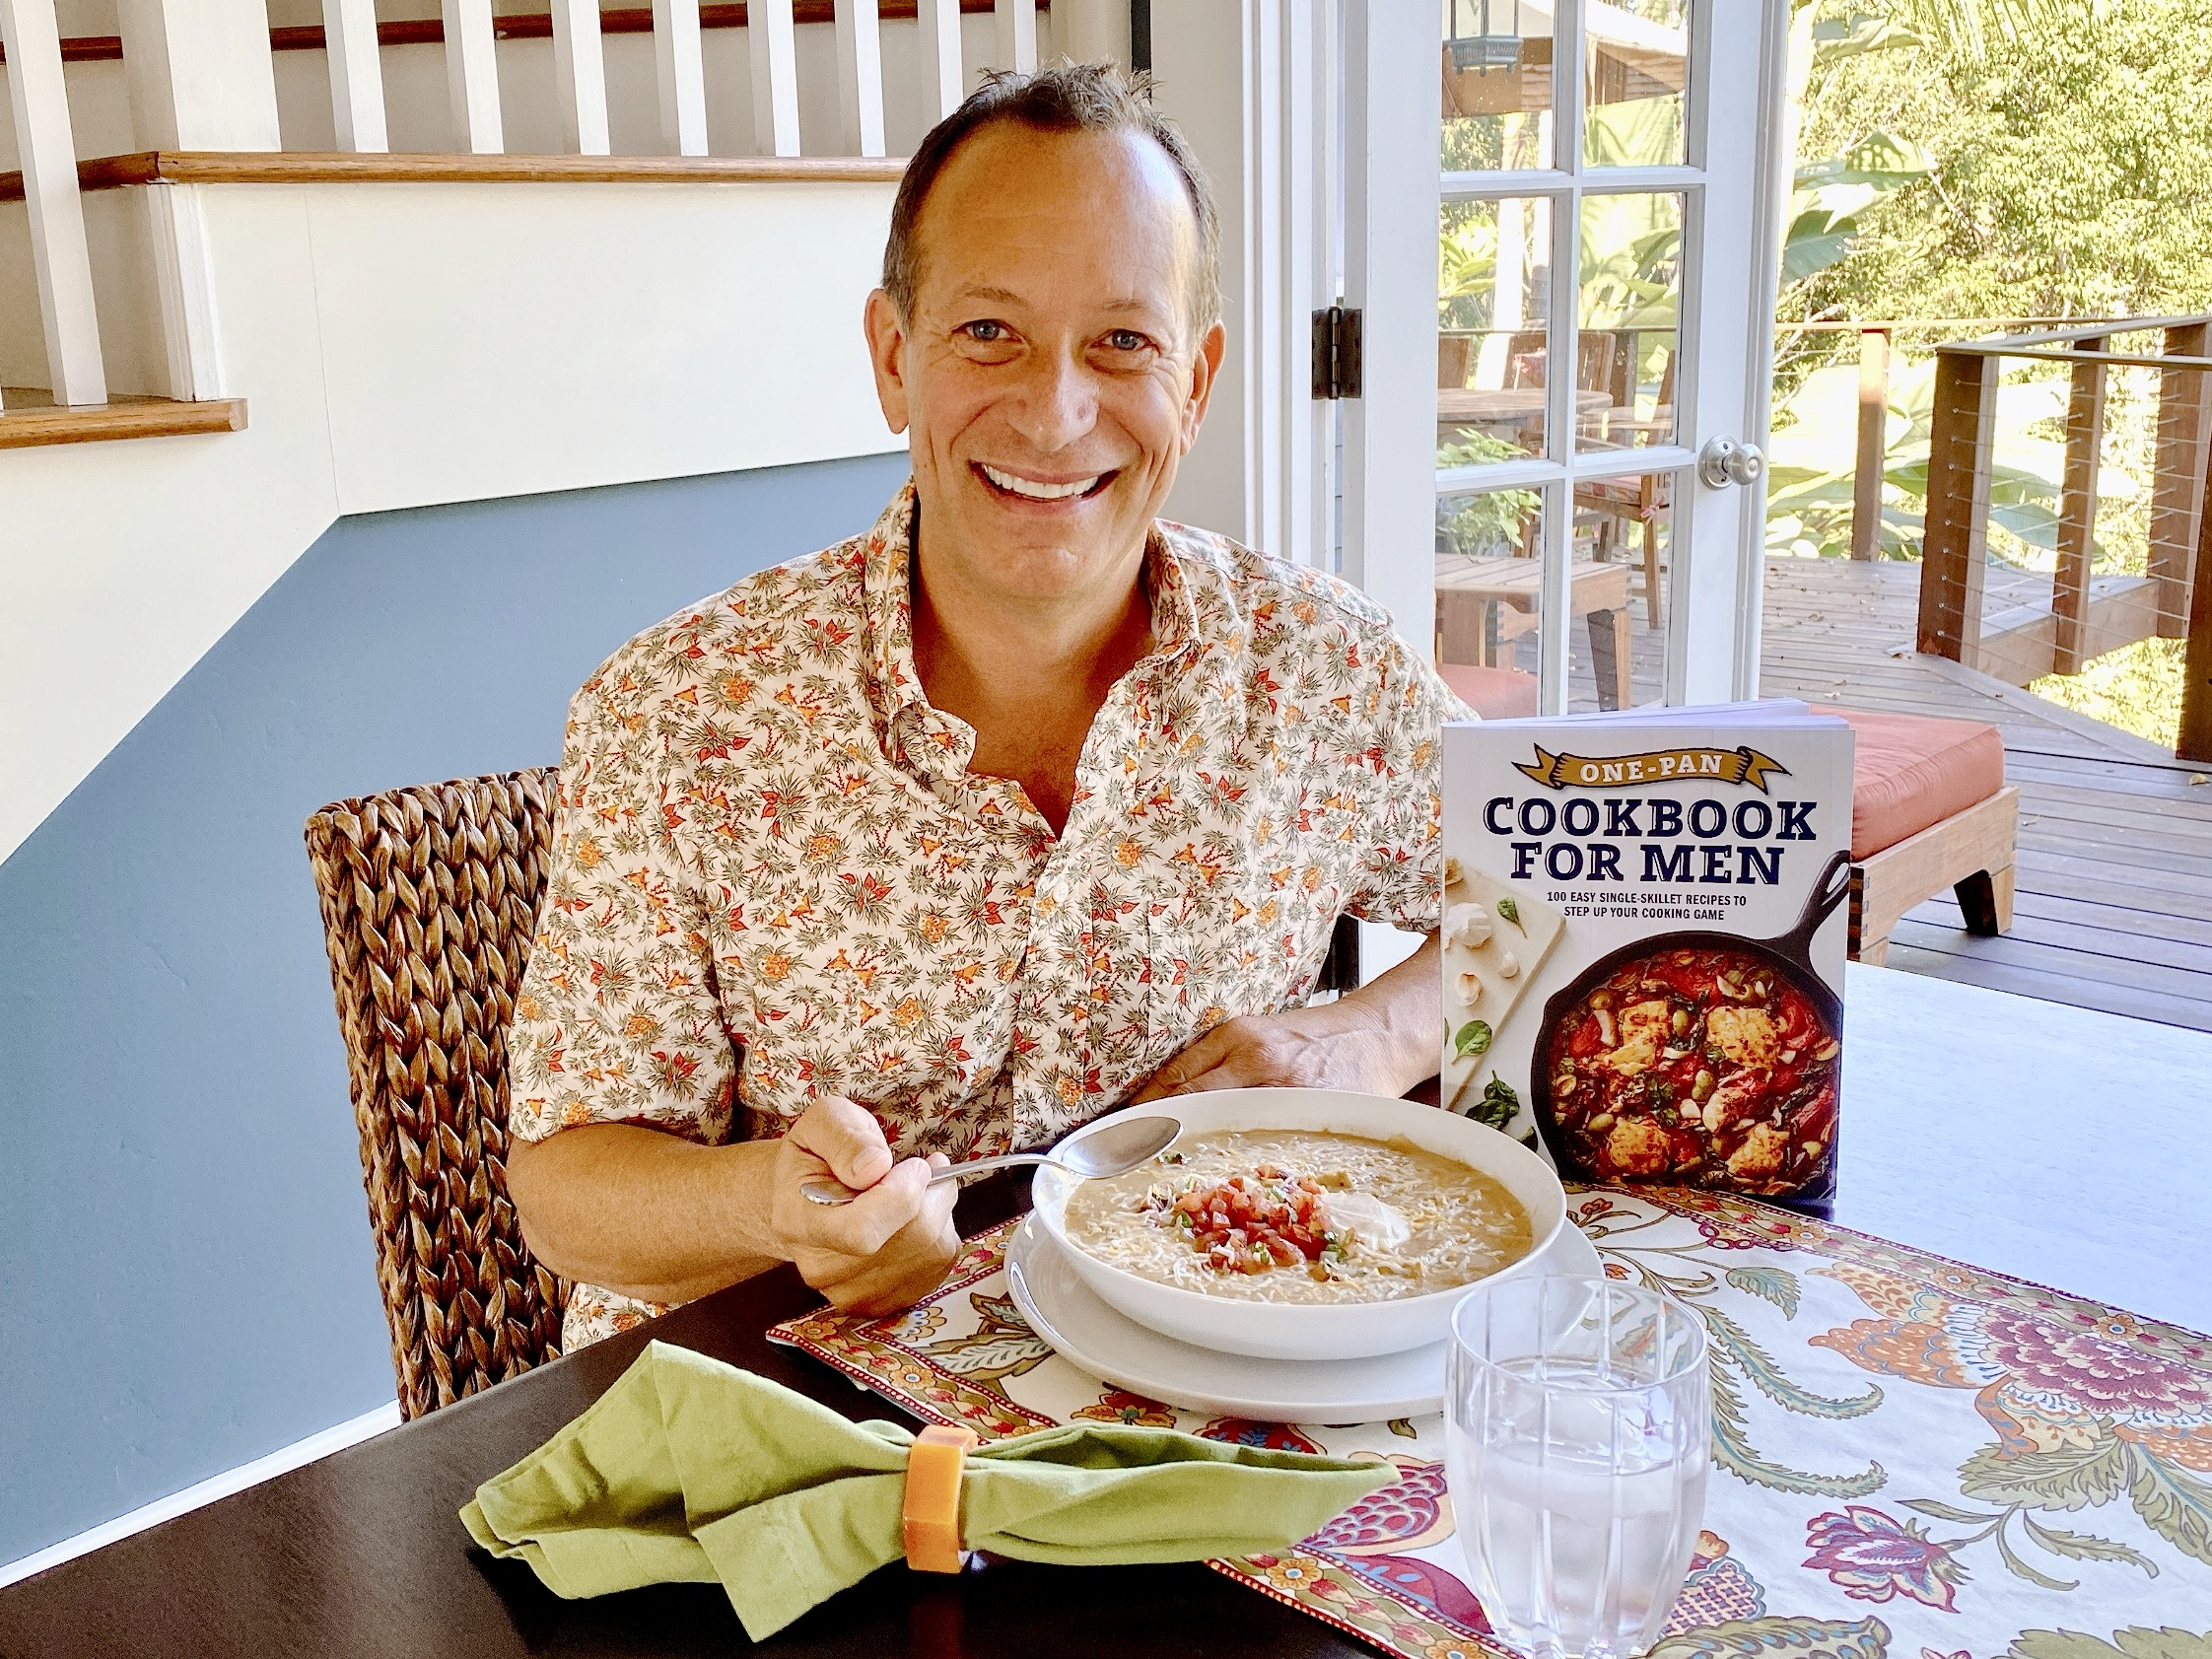 Jon Bailey and his new book One-Pan Cookbook for Men